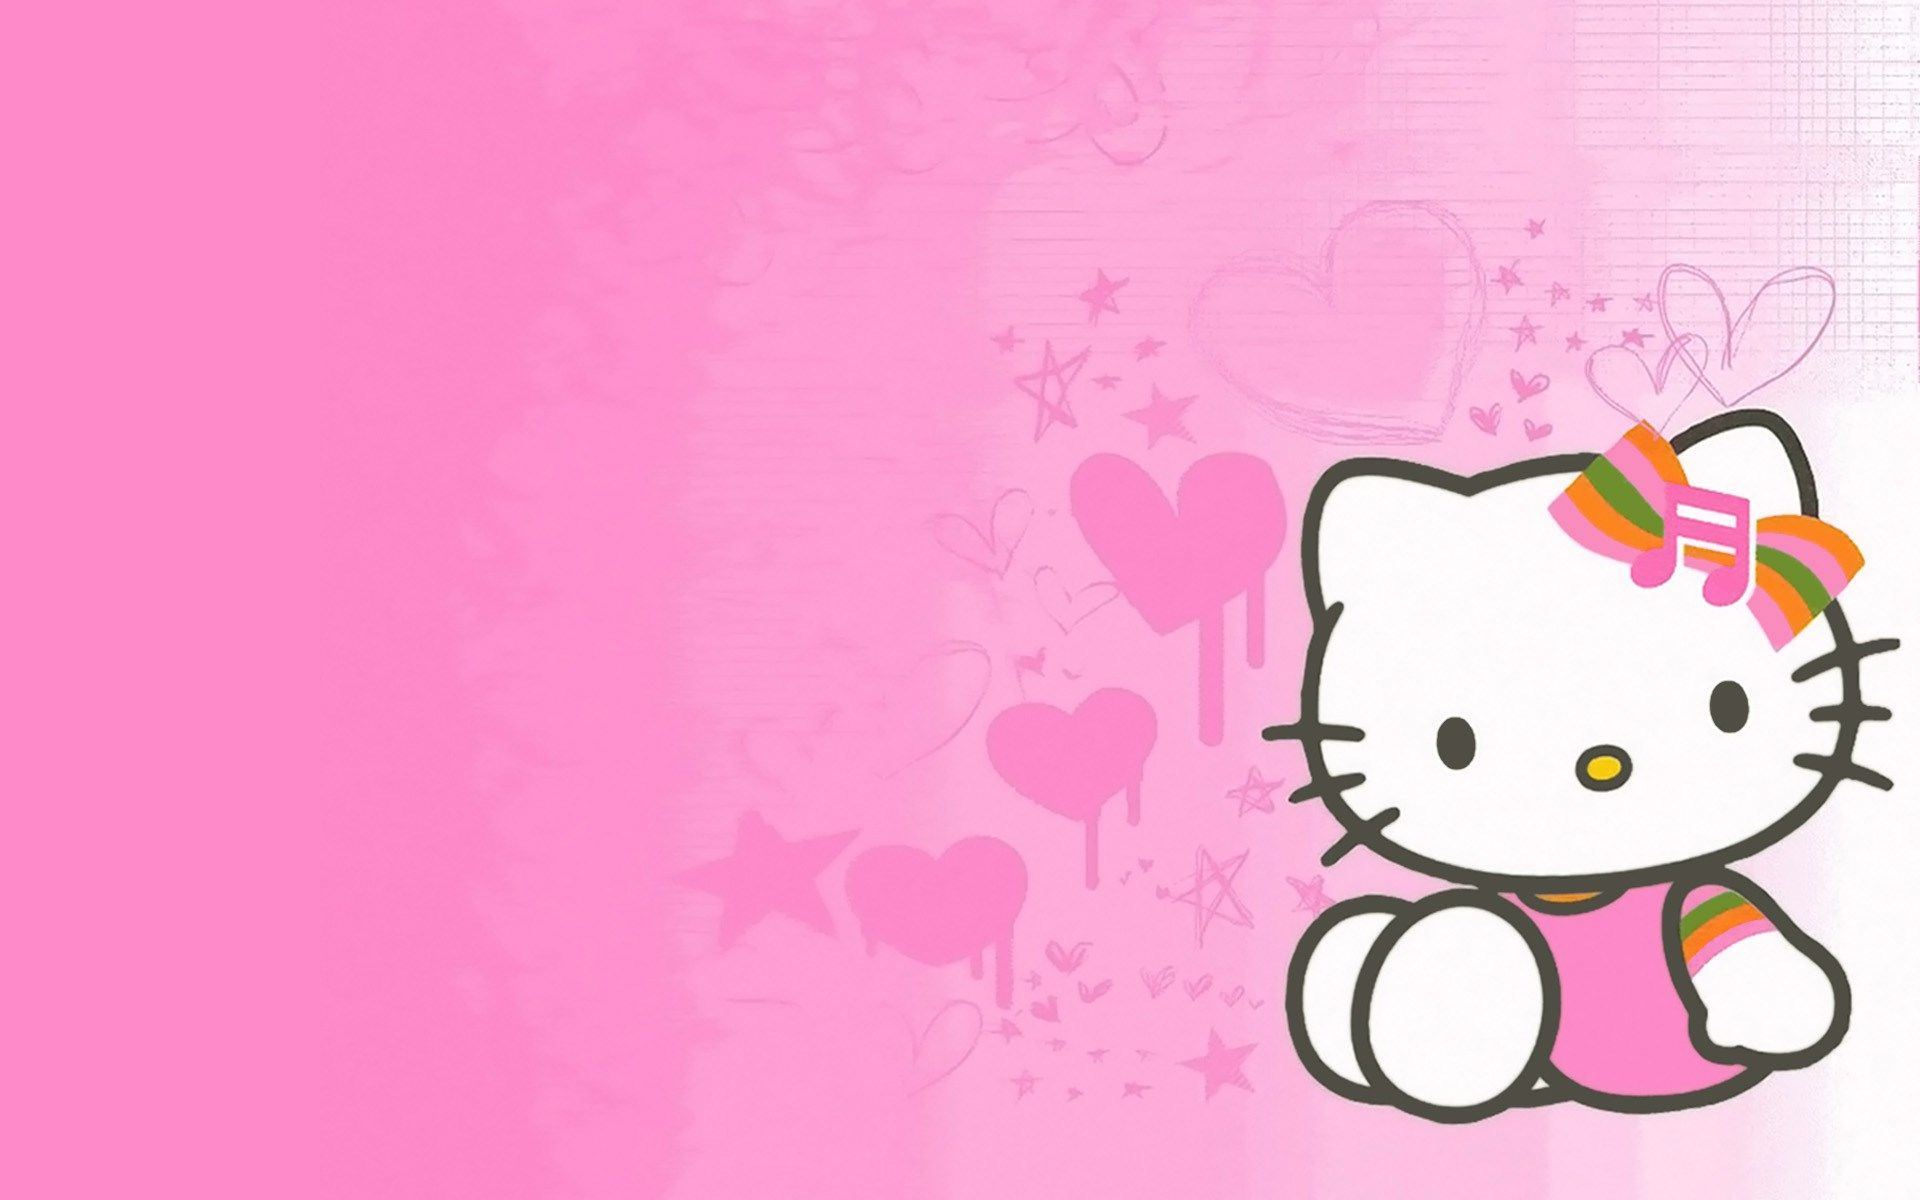 Cute Pink Wallpaper Hd Kitty Image Idei Dlya Vecherinki Idei Vecherinka